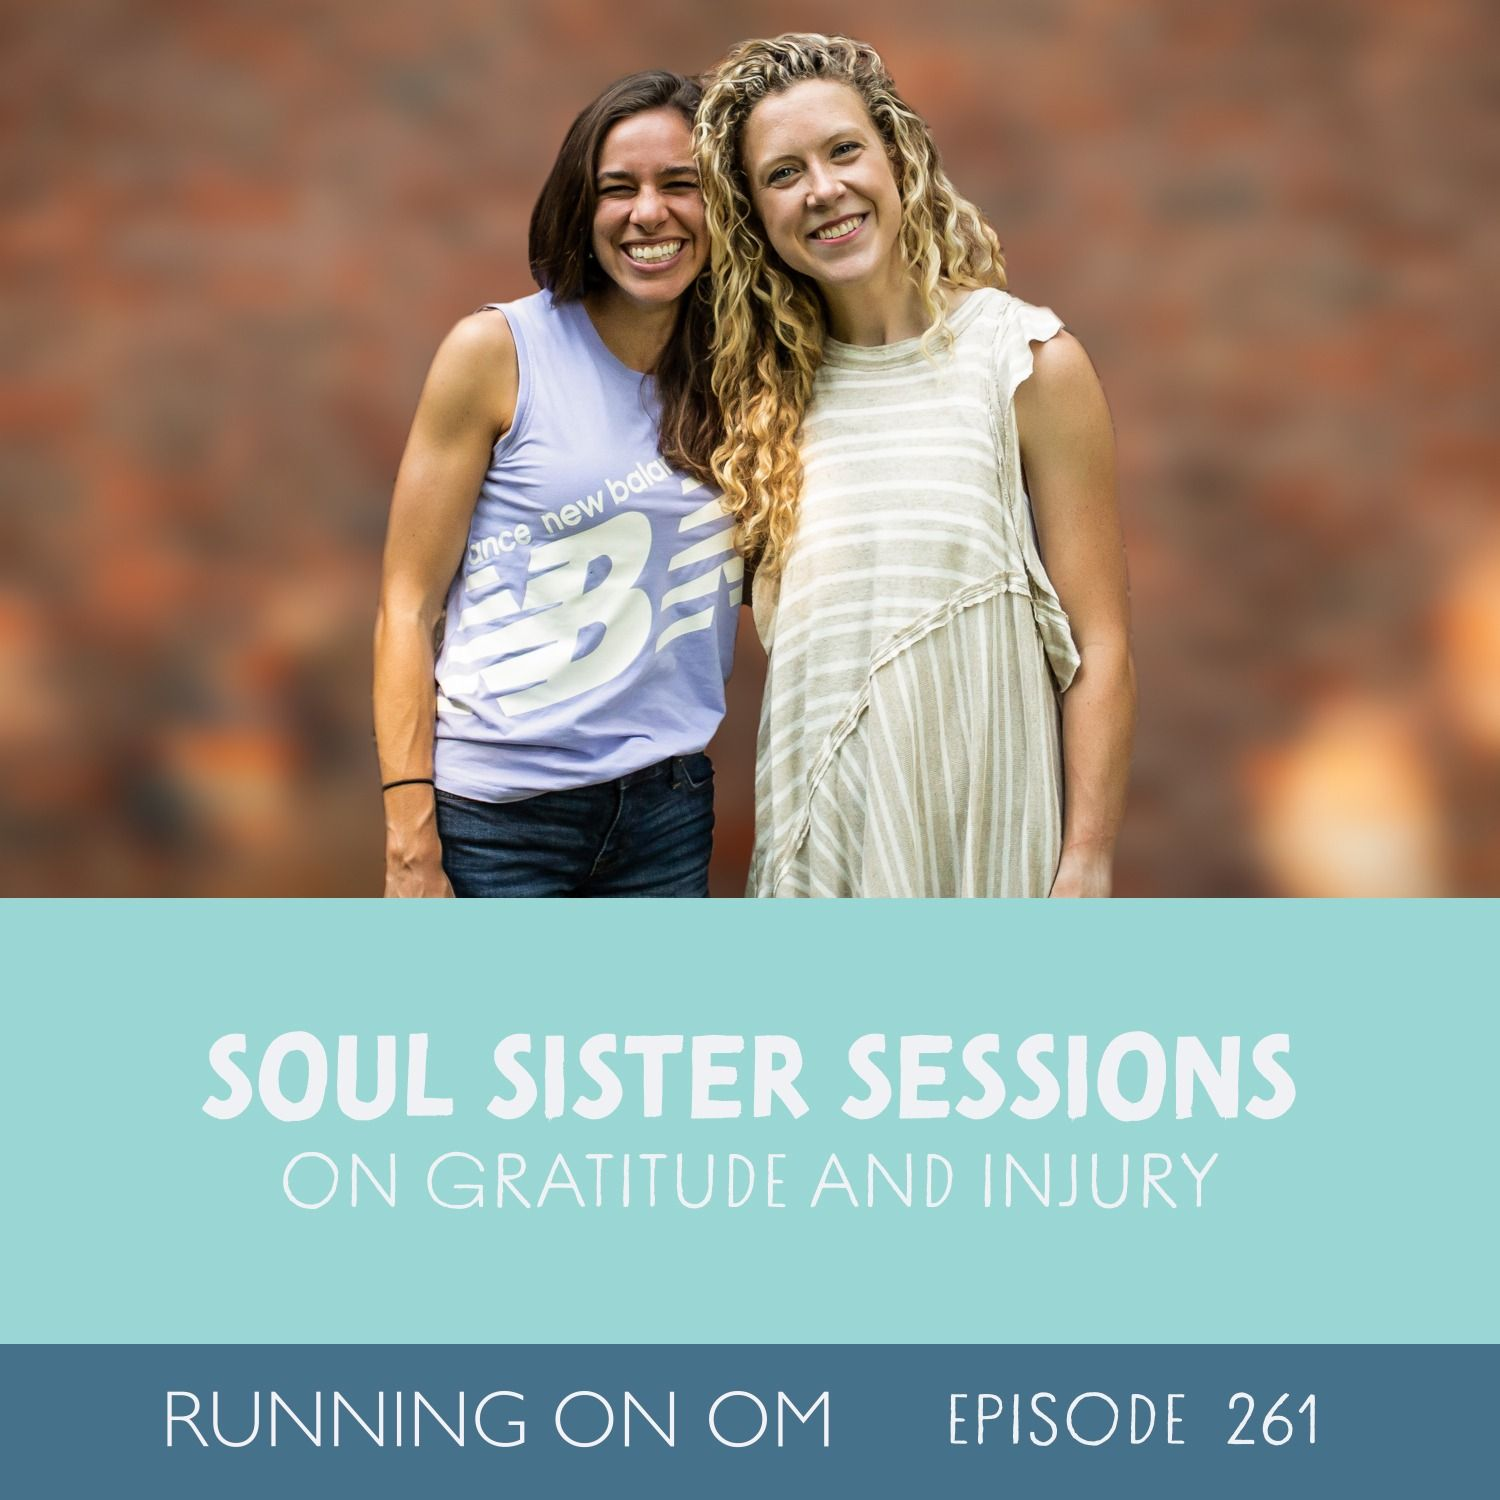 Soul Sister Sessions on Gratitude and Injury